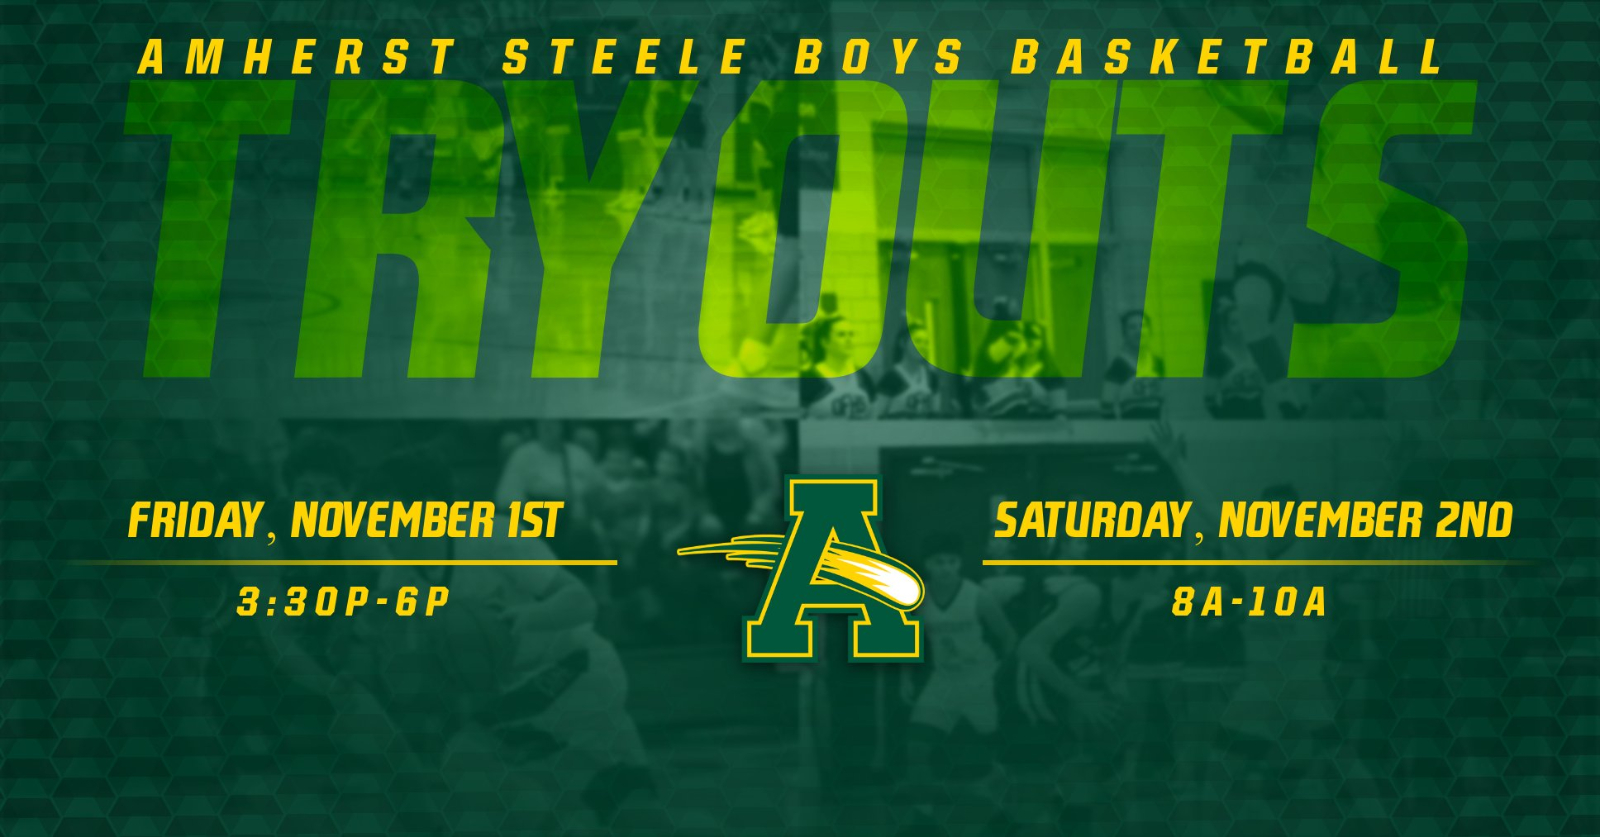 Tryout Information for Boys Basketball (@SteeleBoysBBall)